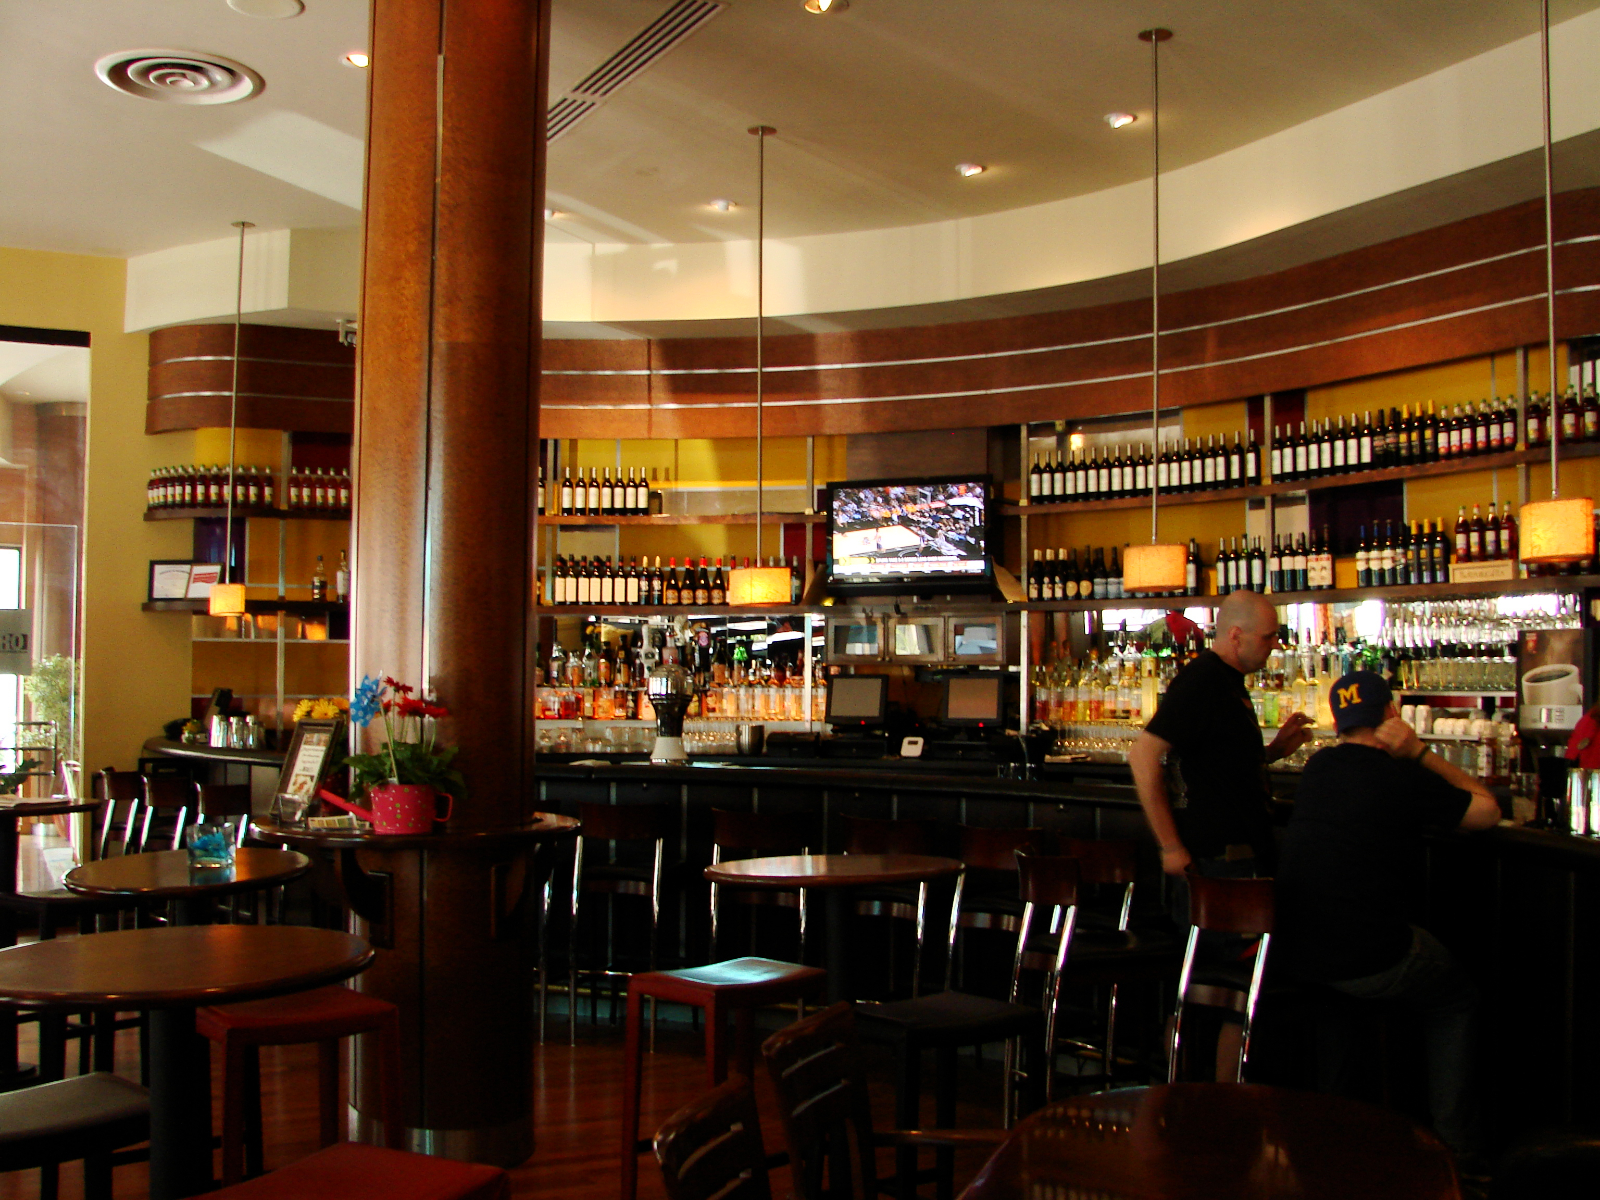 A view of the whole bar at Hotel metro.